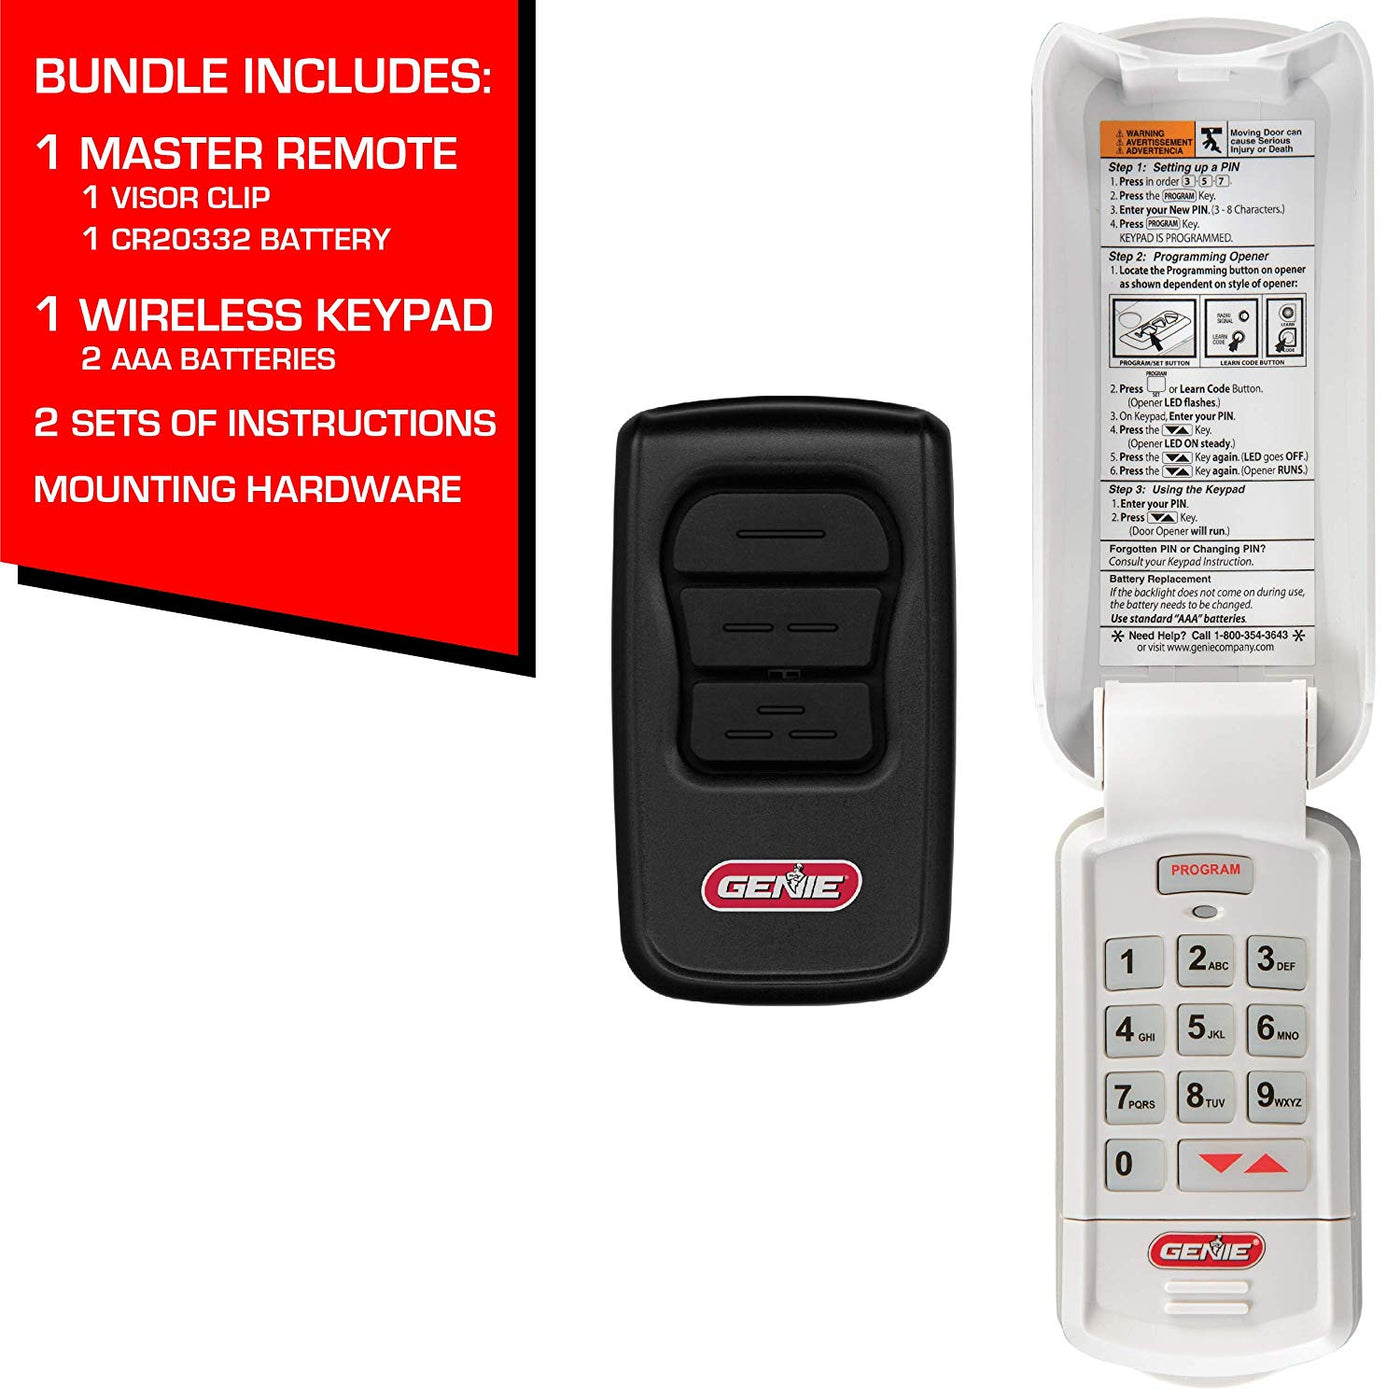 Genie Garage Door Opener Keyless Entry Master Remote